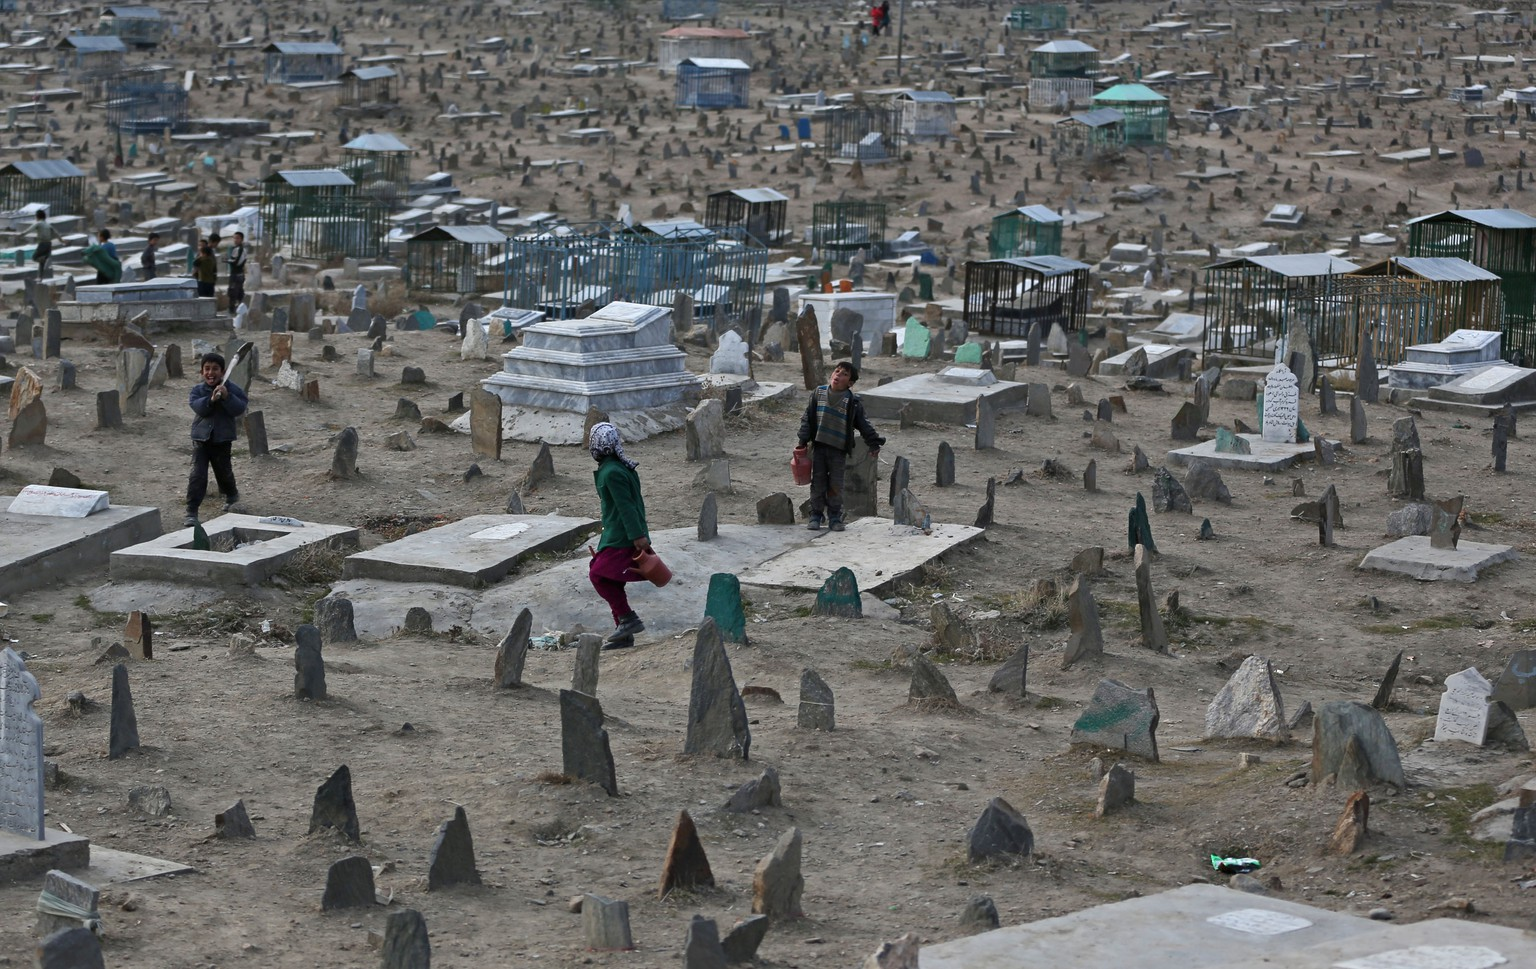 Afghan children wait for customers to sell water in Kart-e Sakhi cemetery in Kabul, Afghanistan, Wednesday, Jan. 29, 2014. Children sell water in cemeteries for visitors to pour it on their relatives' graveyards. (AP Photo/Massoud Hossaini)